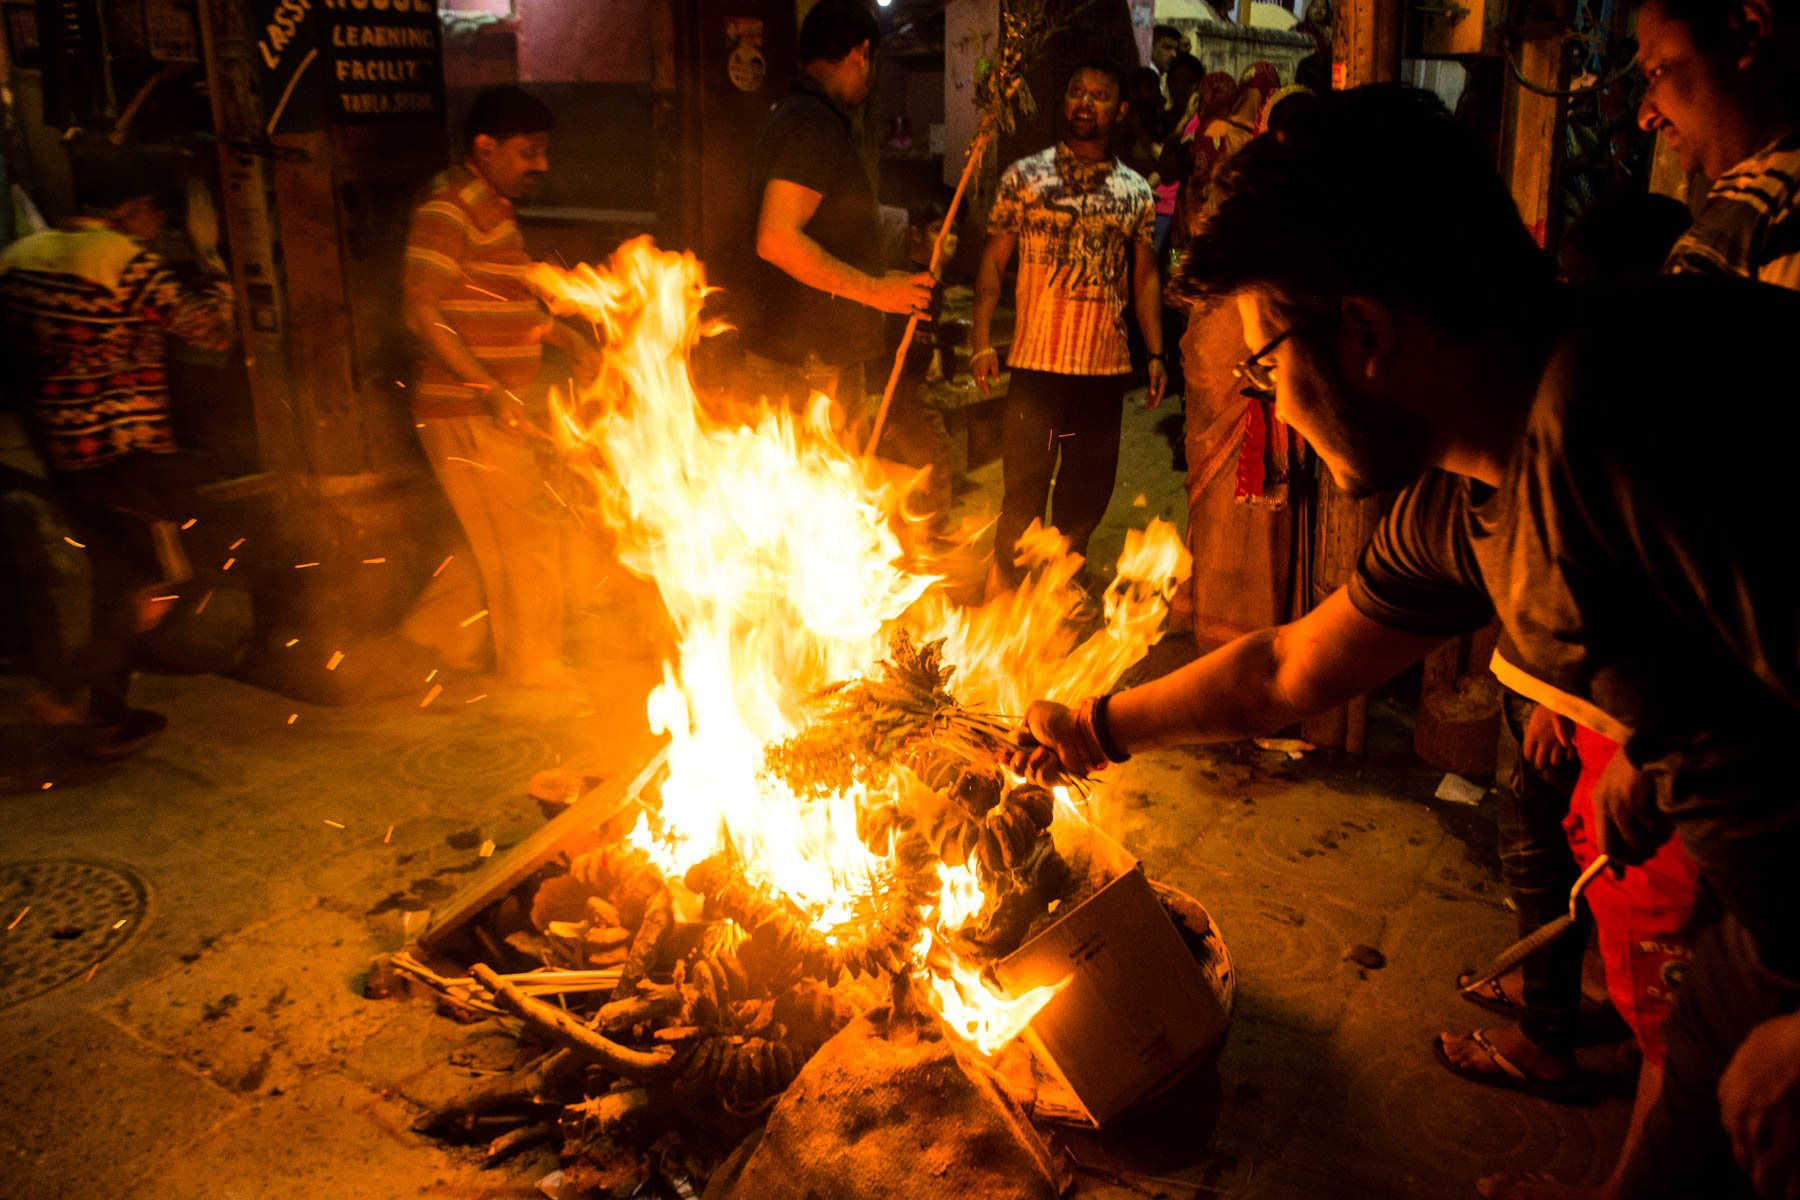 What you need know about playing Holi in Varanasi, India - People putting offerings into the fire on Holika Dahan, the night before Holi - Lost With Purpose